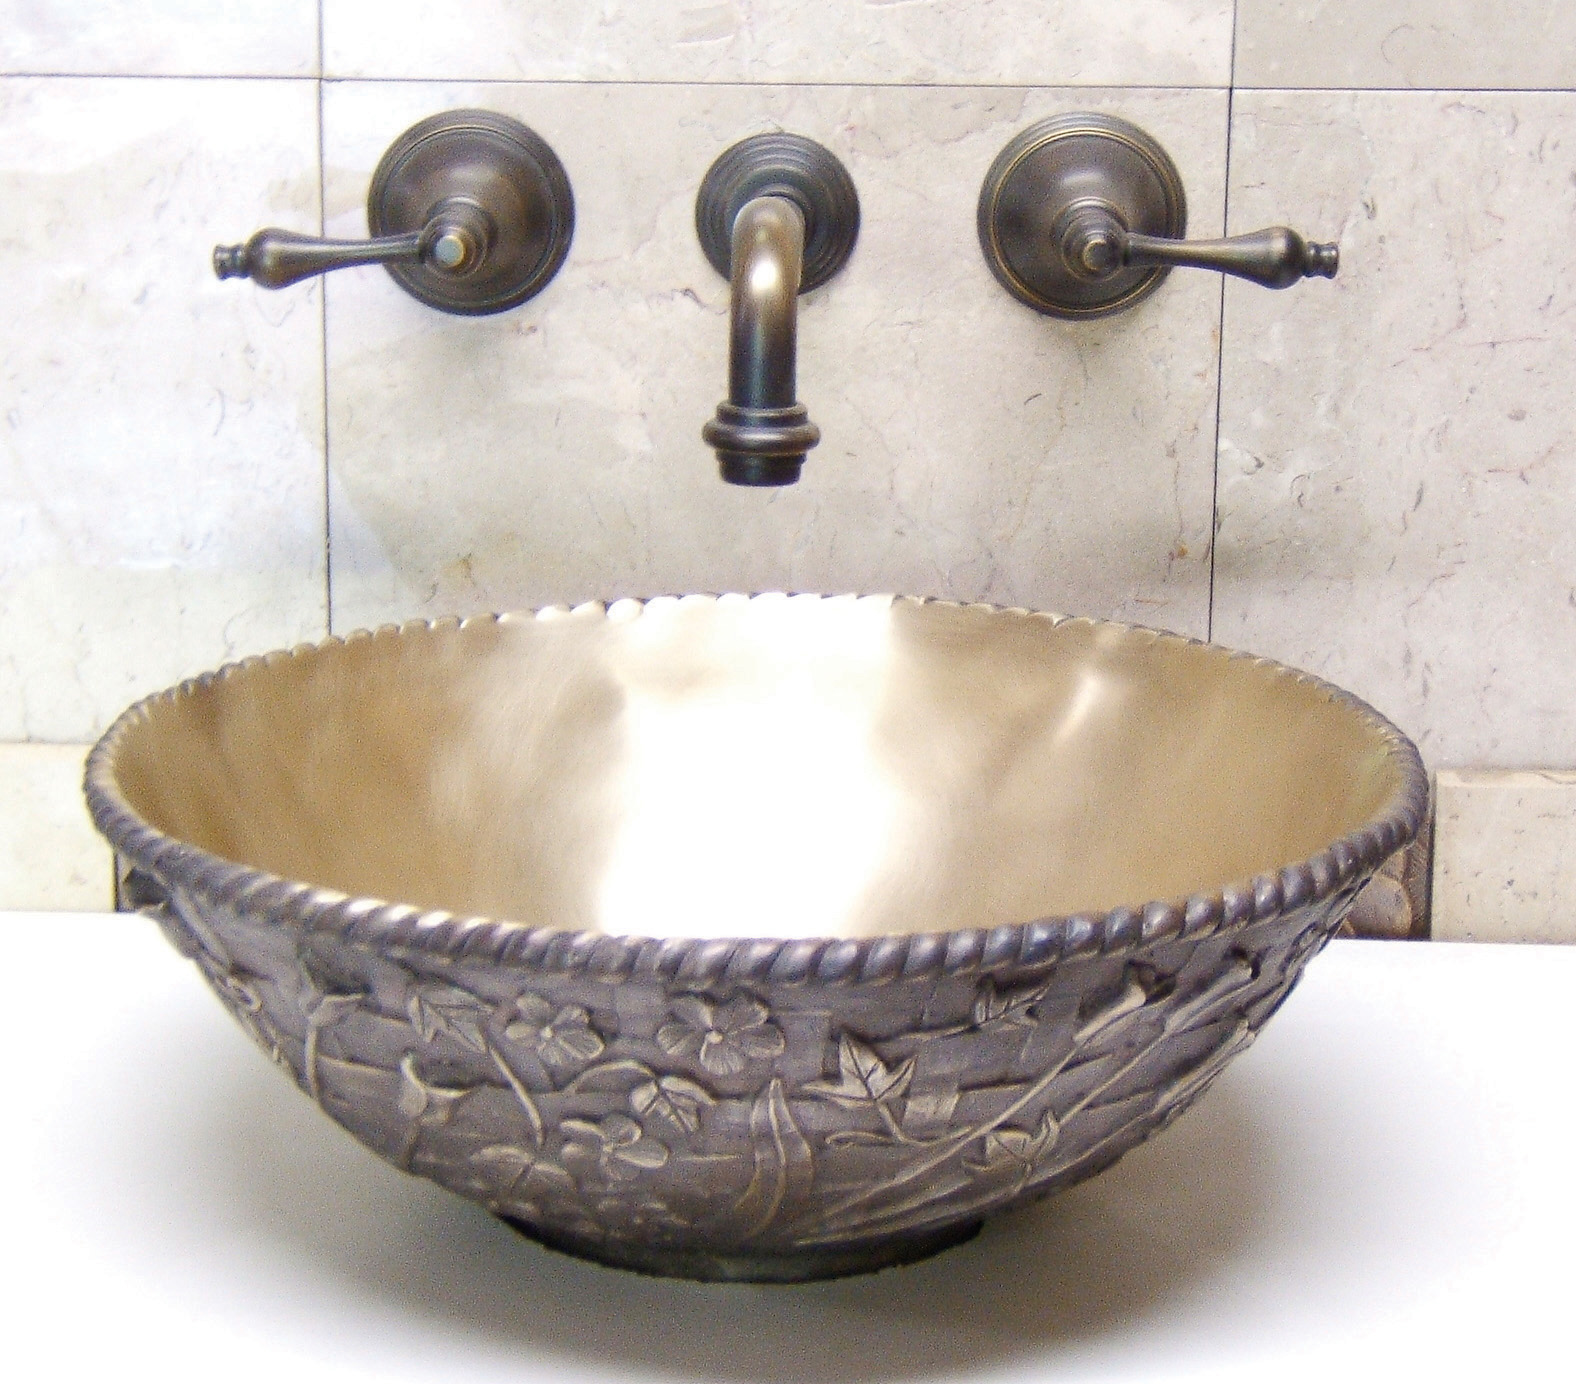 Unique bathroom sinks excellent, support